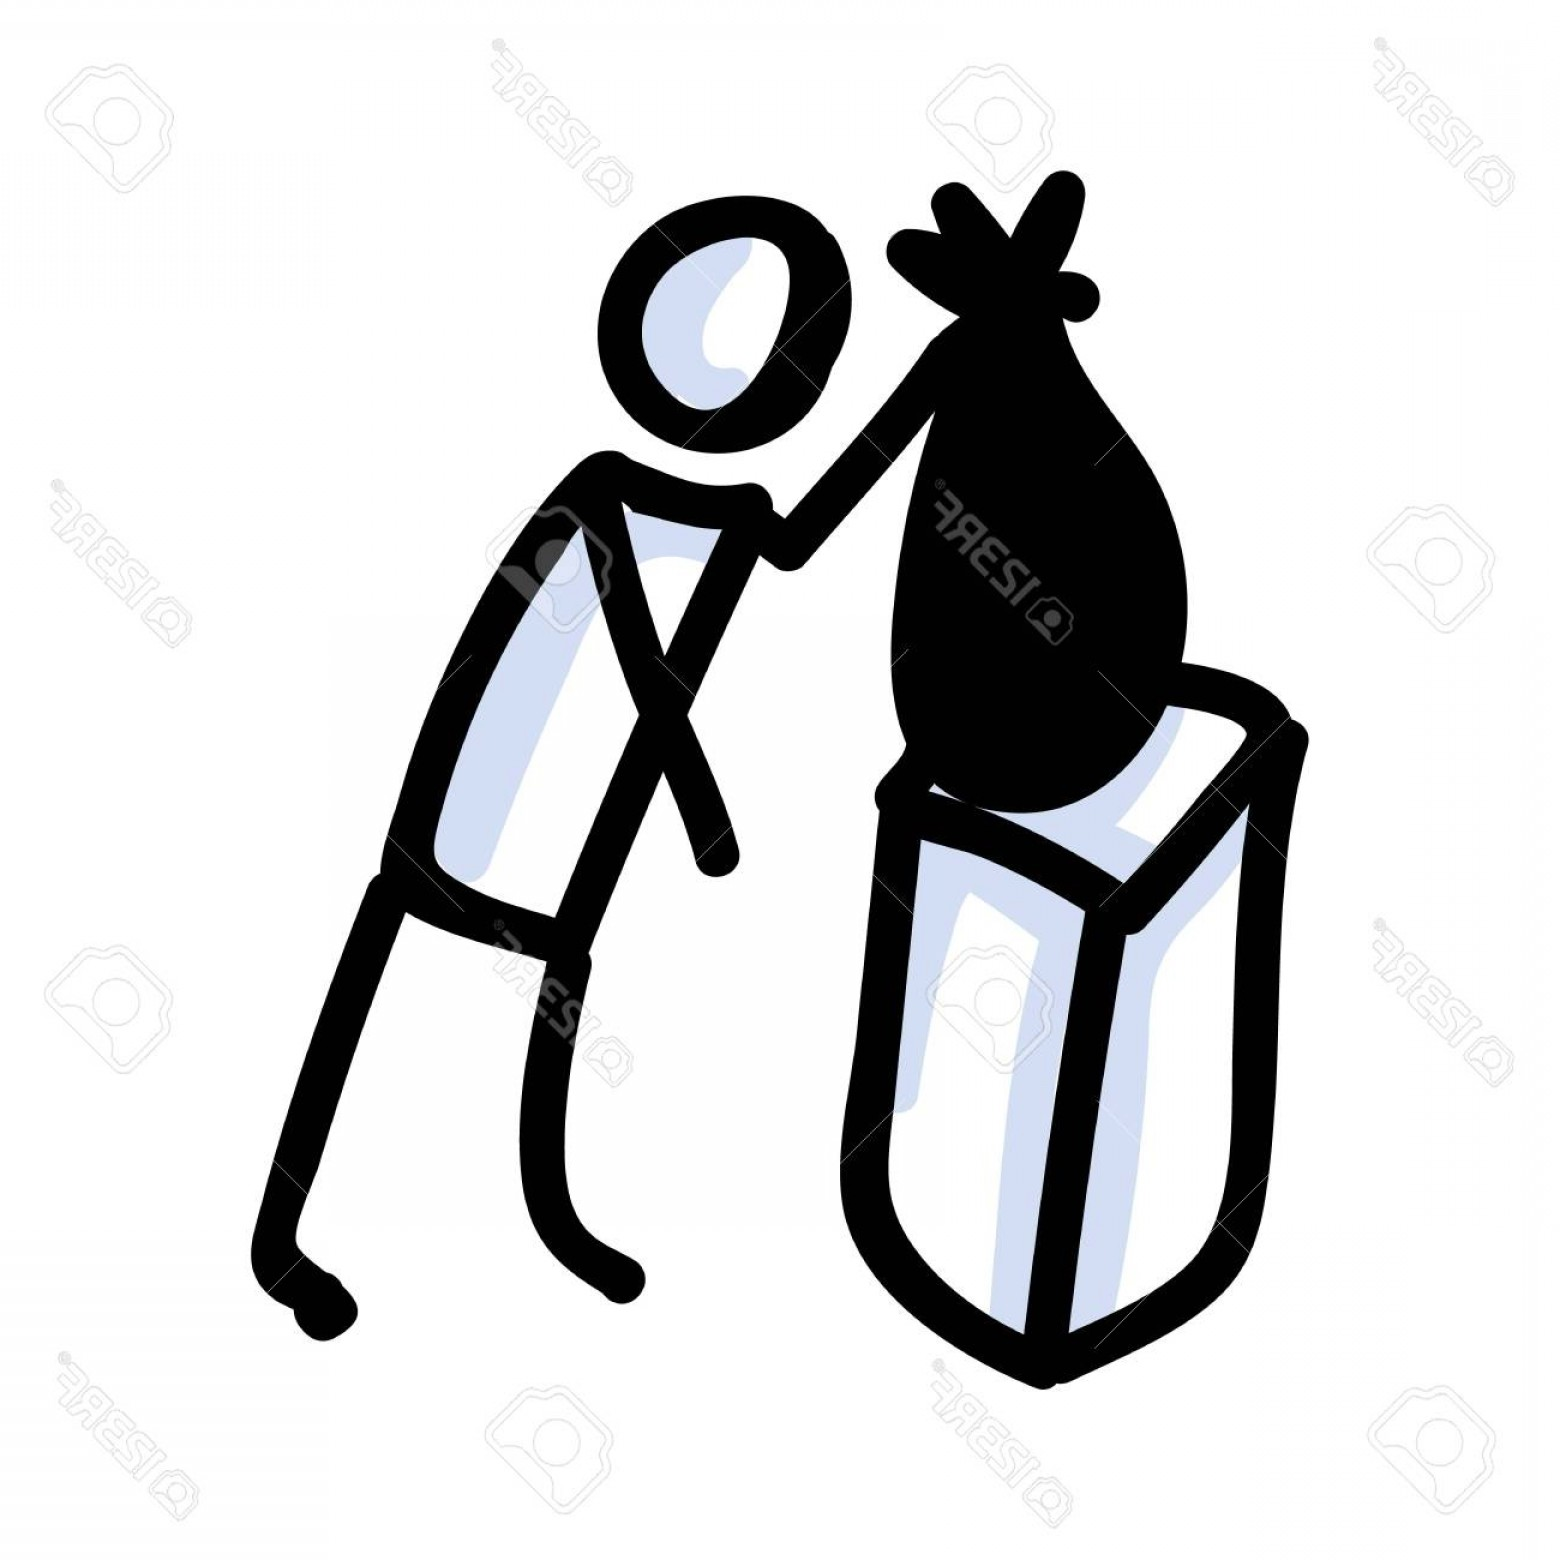 Volunteer Clip Art Vector: Photostock Vector Hand Drawn Stick Figure Trash Bag Concept Of Clean Up Earth Day Simple Icon Motif For Environmental